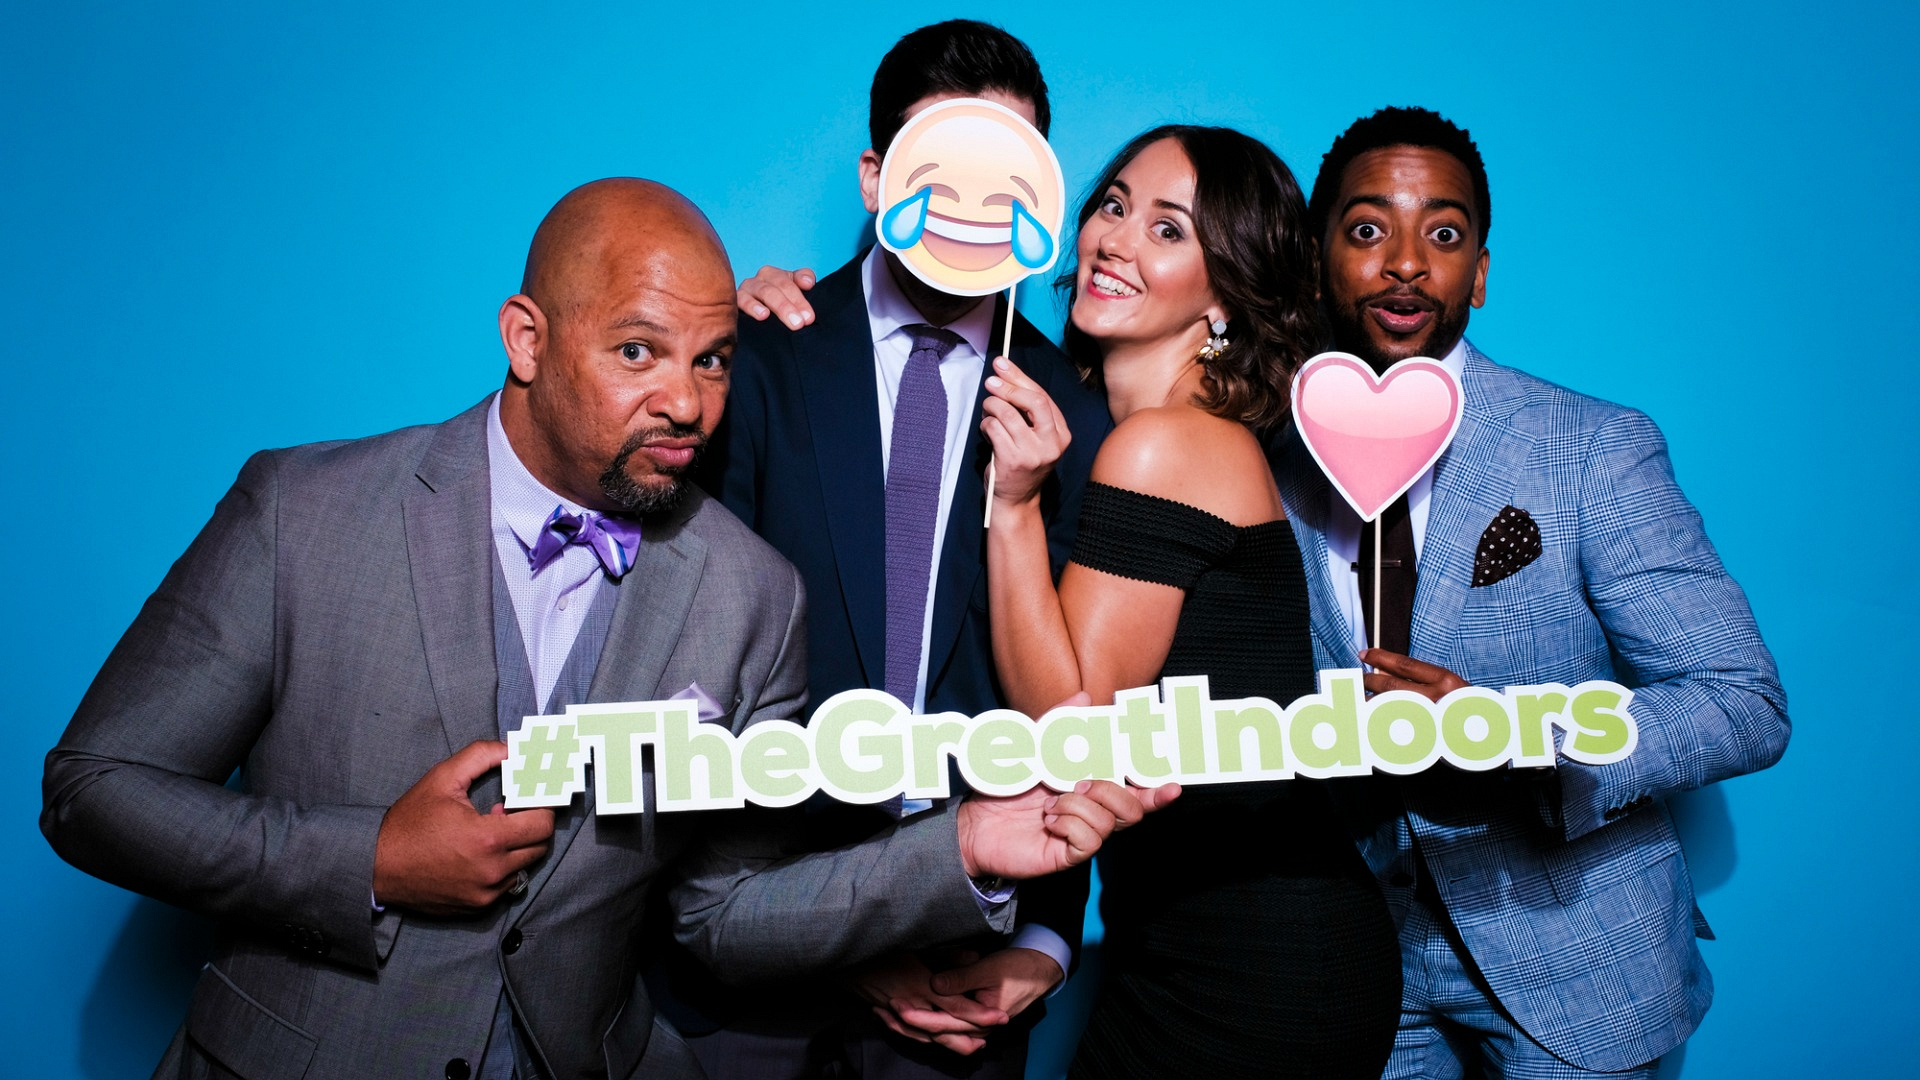 Chris Williams, Christopher Mintz-Plasse, Susannah Fielding, and Shaun Brown from The Great Indoors